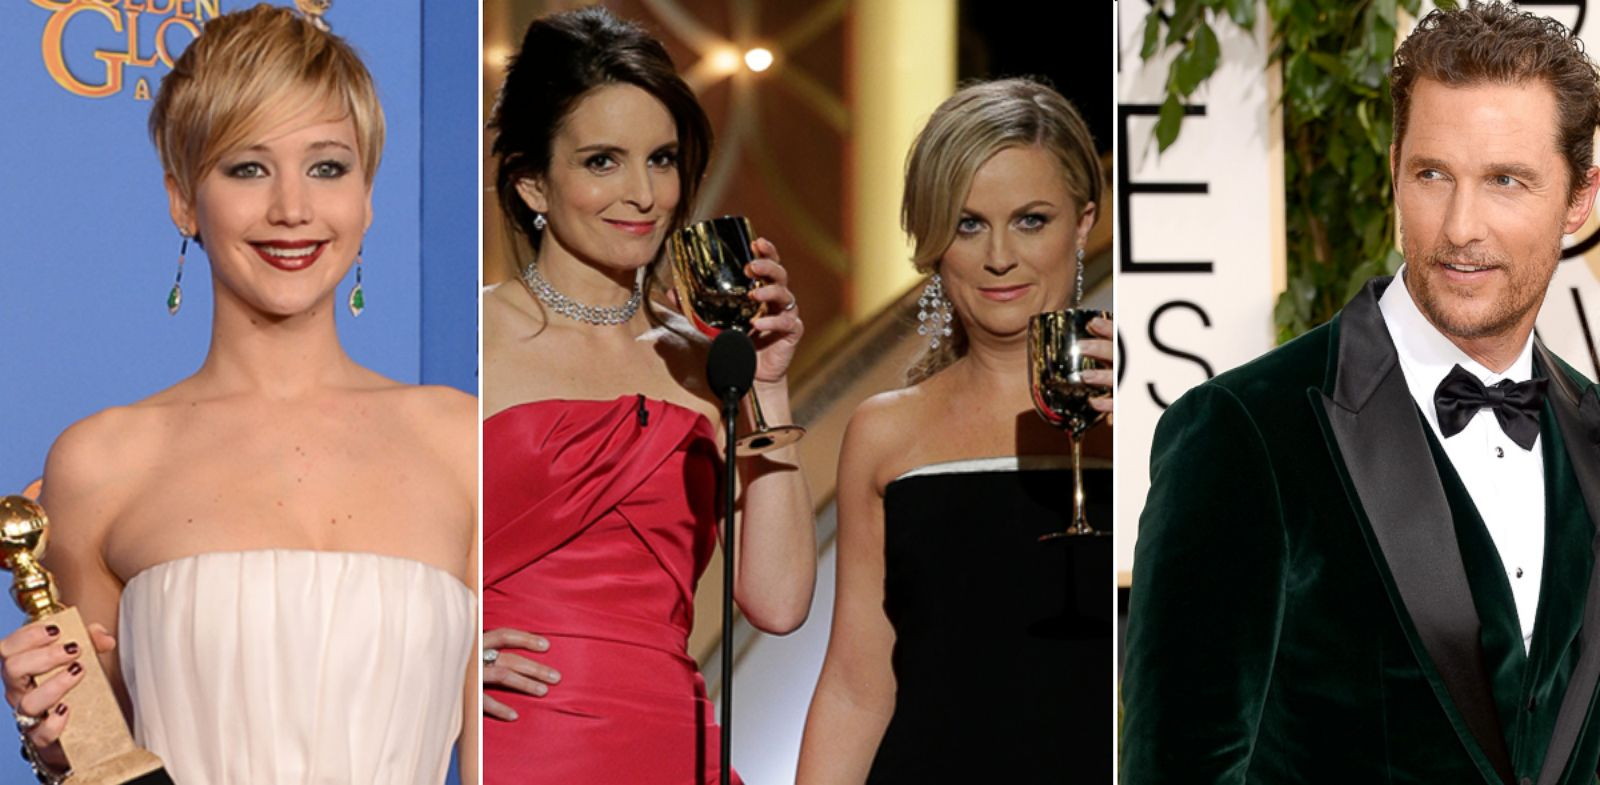 PHOTO: From left, Jennifer Lawrence, Tina Fey, Amy Poehler and Matthew McConaughey at the Golden Globes, Jan, 12, 2014.